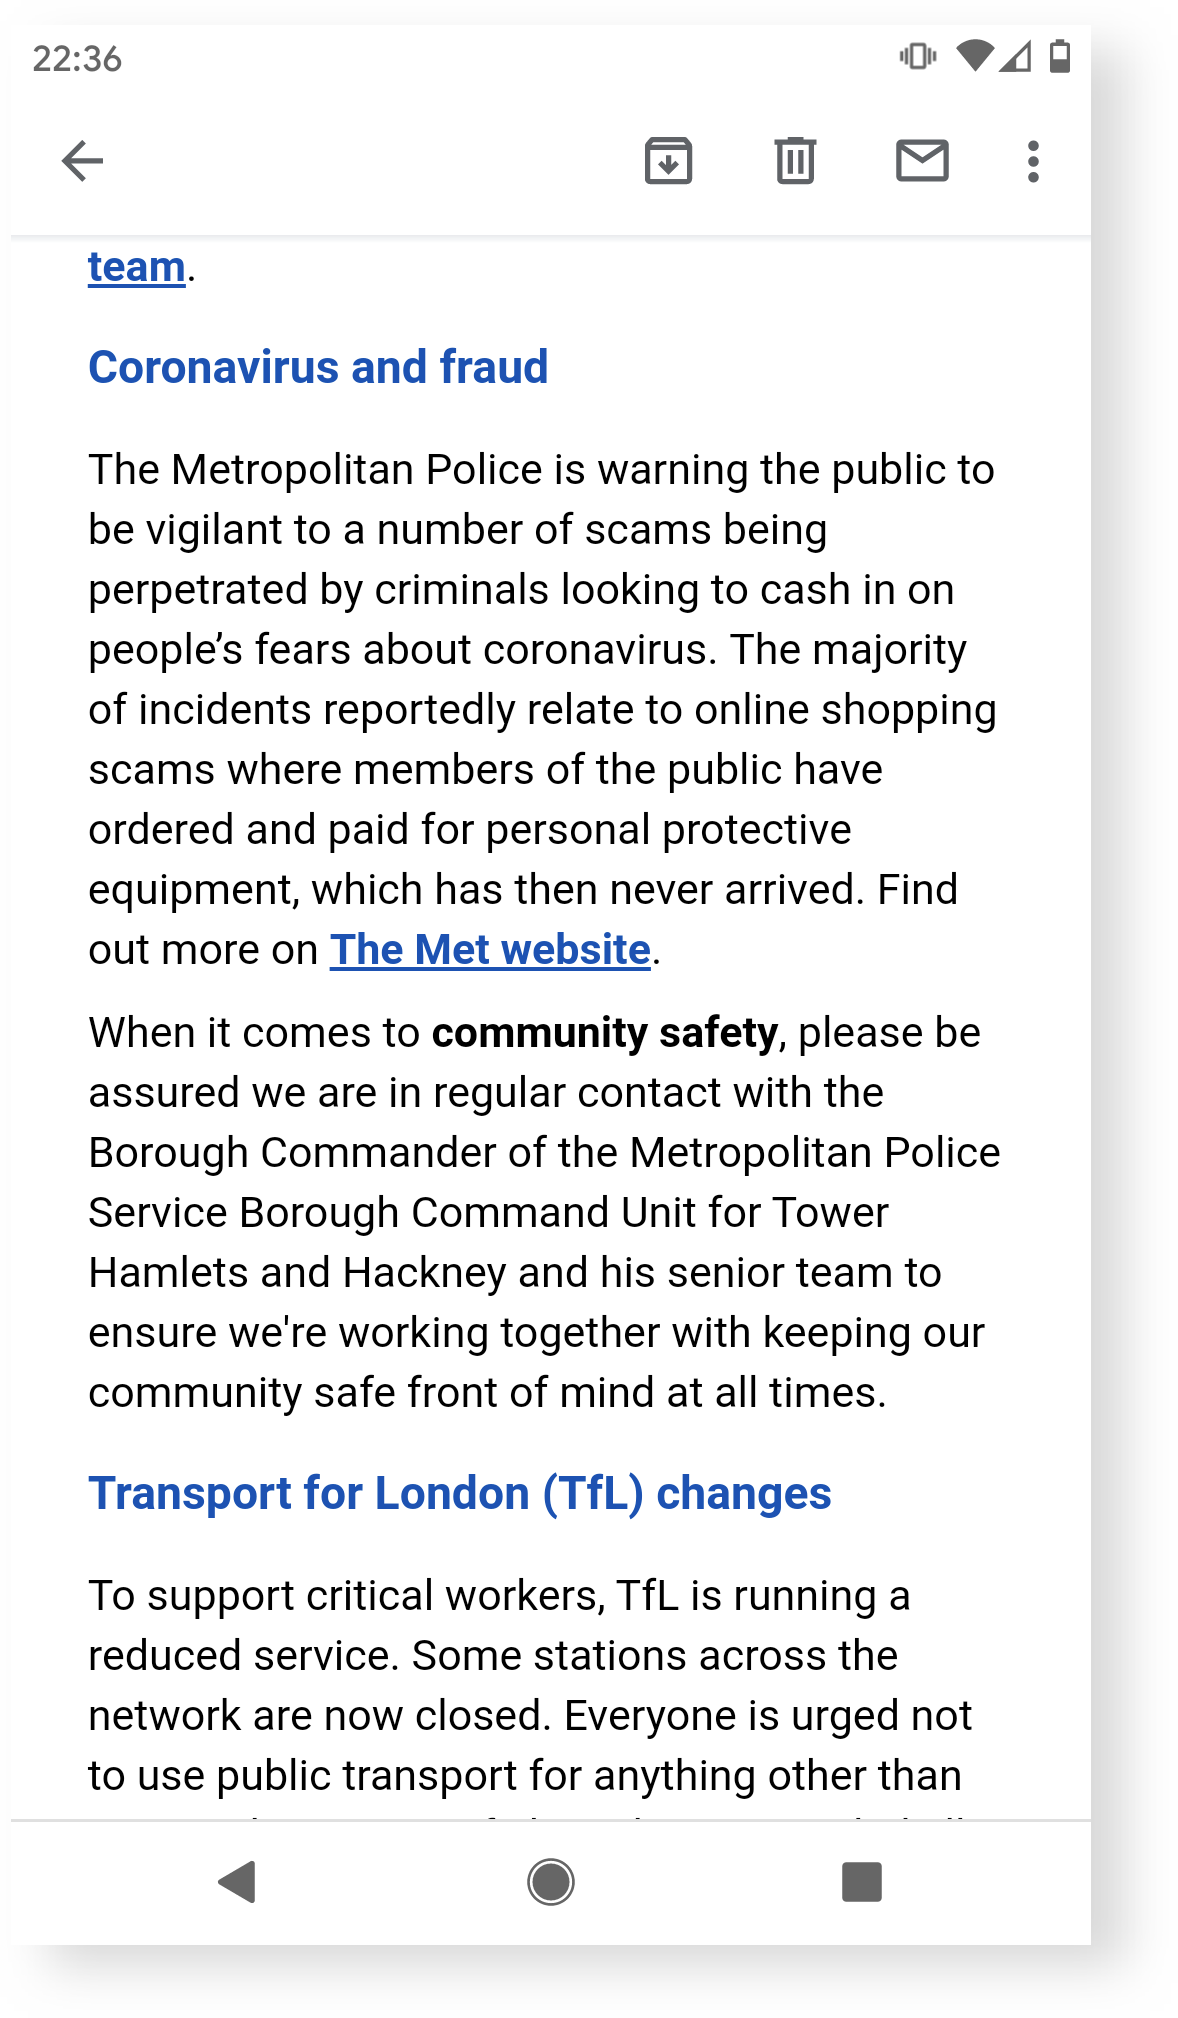 Evidence: Met police warning on new scams